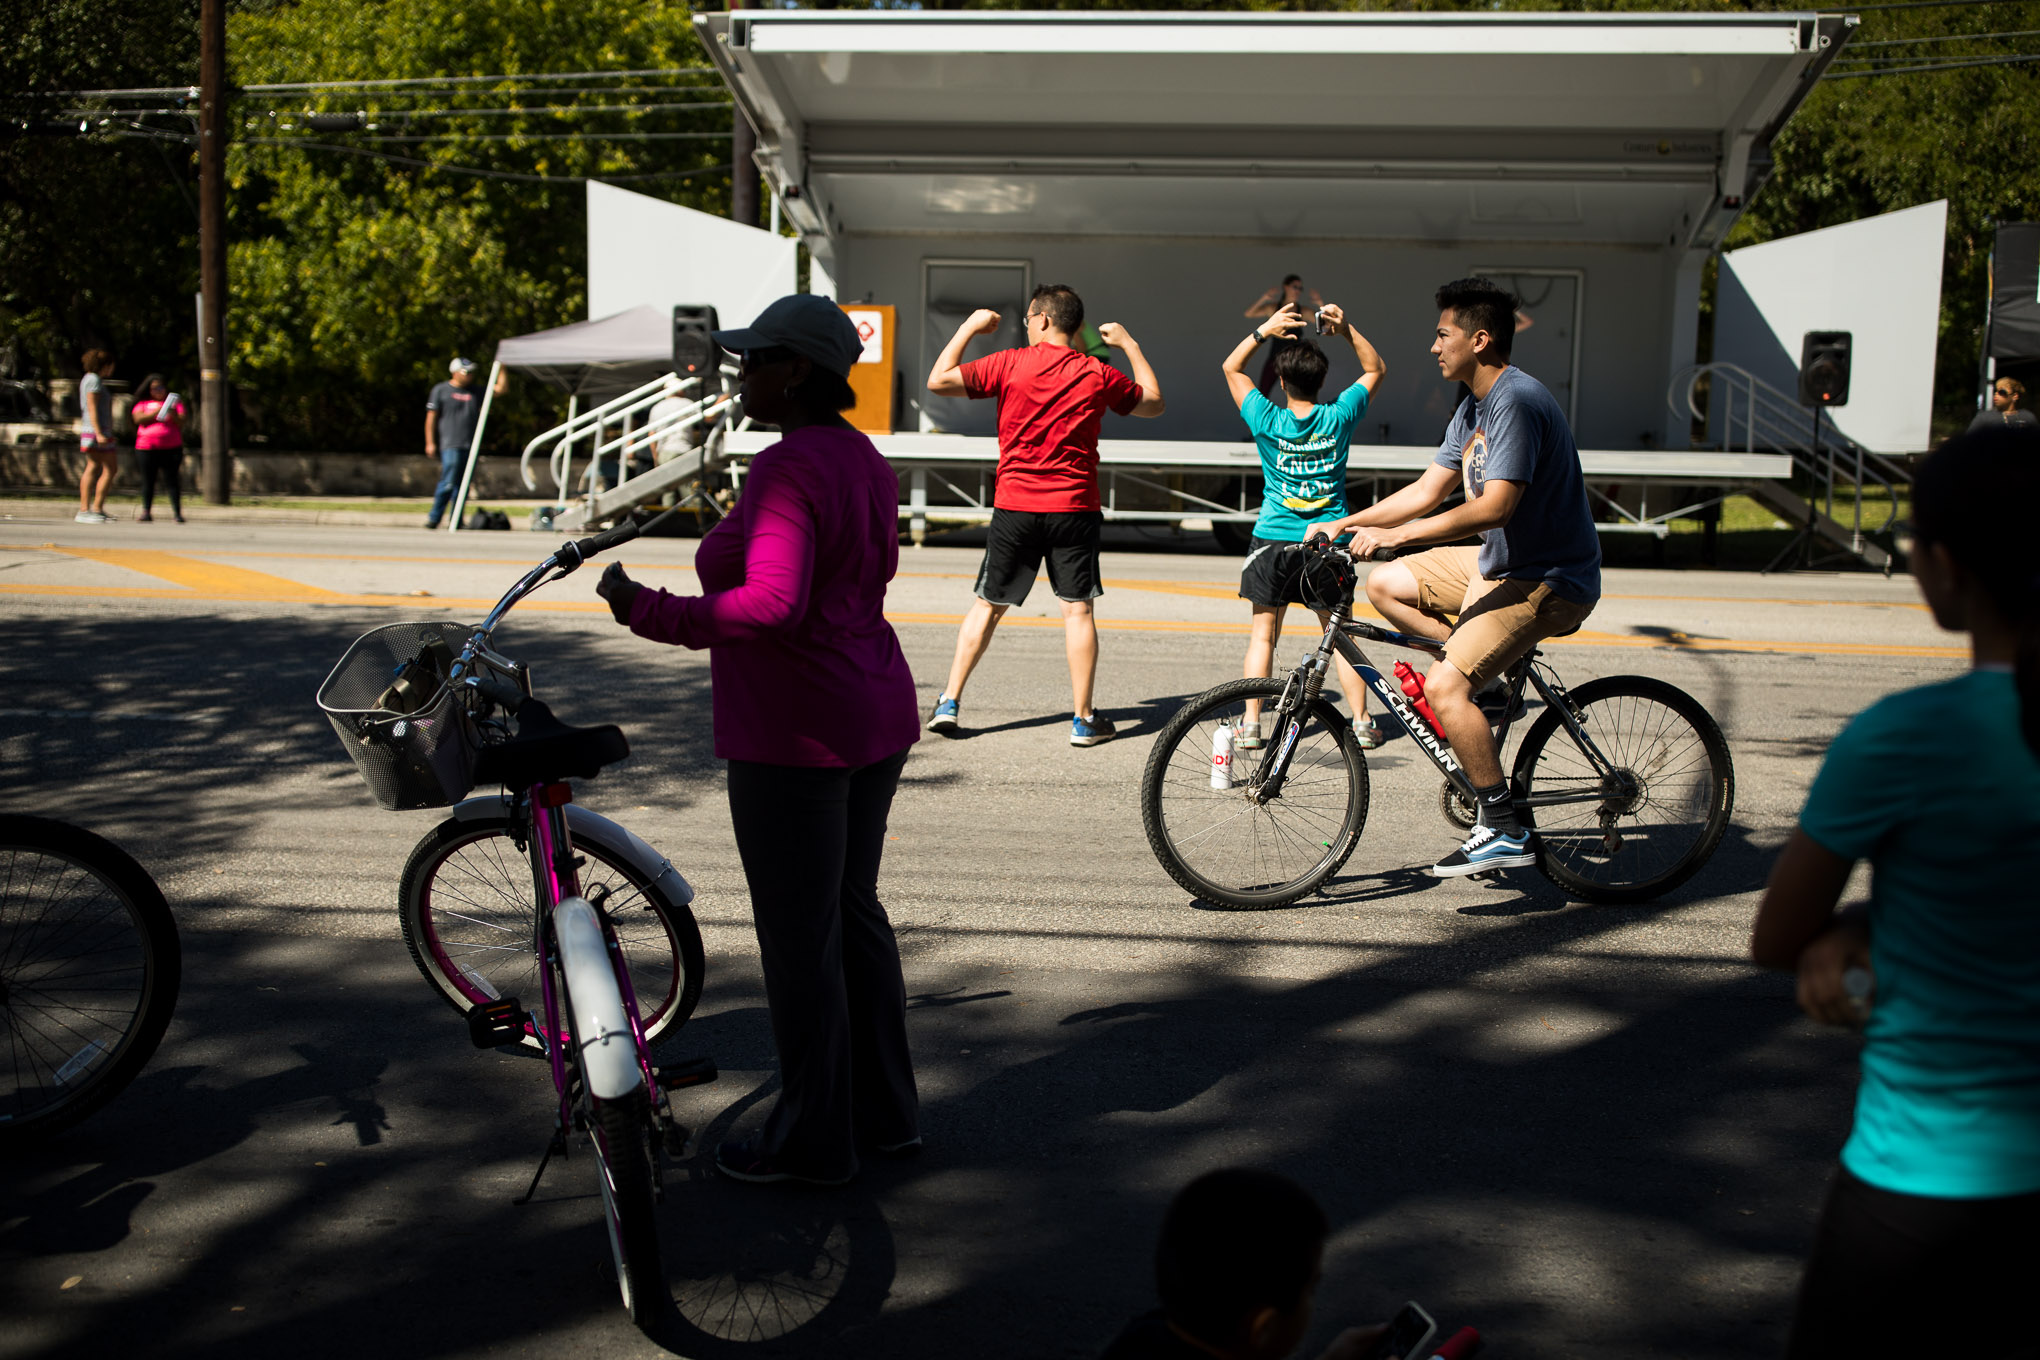 Síclovía attendees work out through a variety of ways during the event.